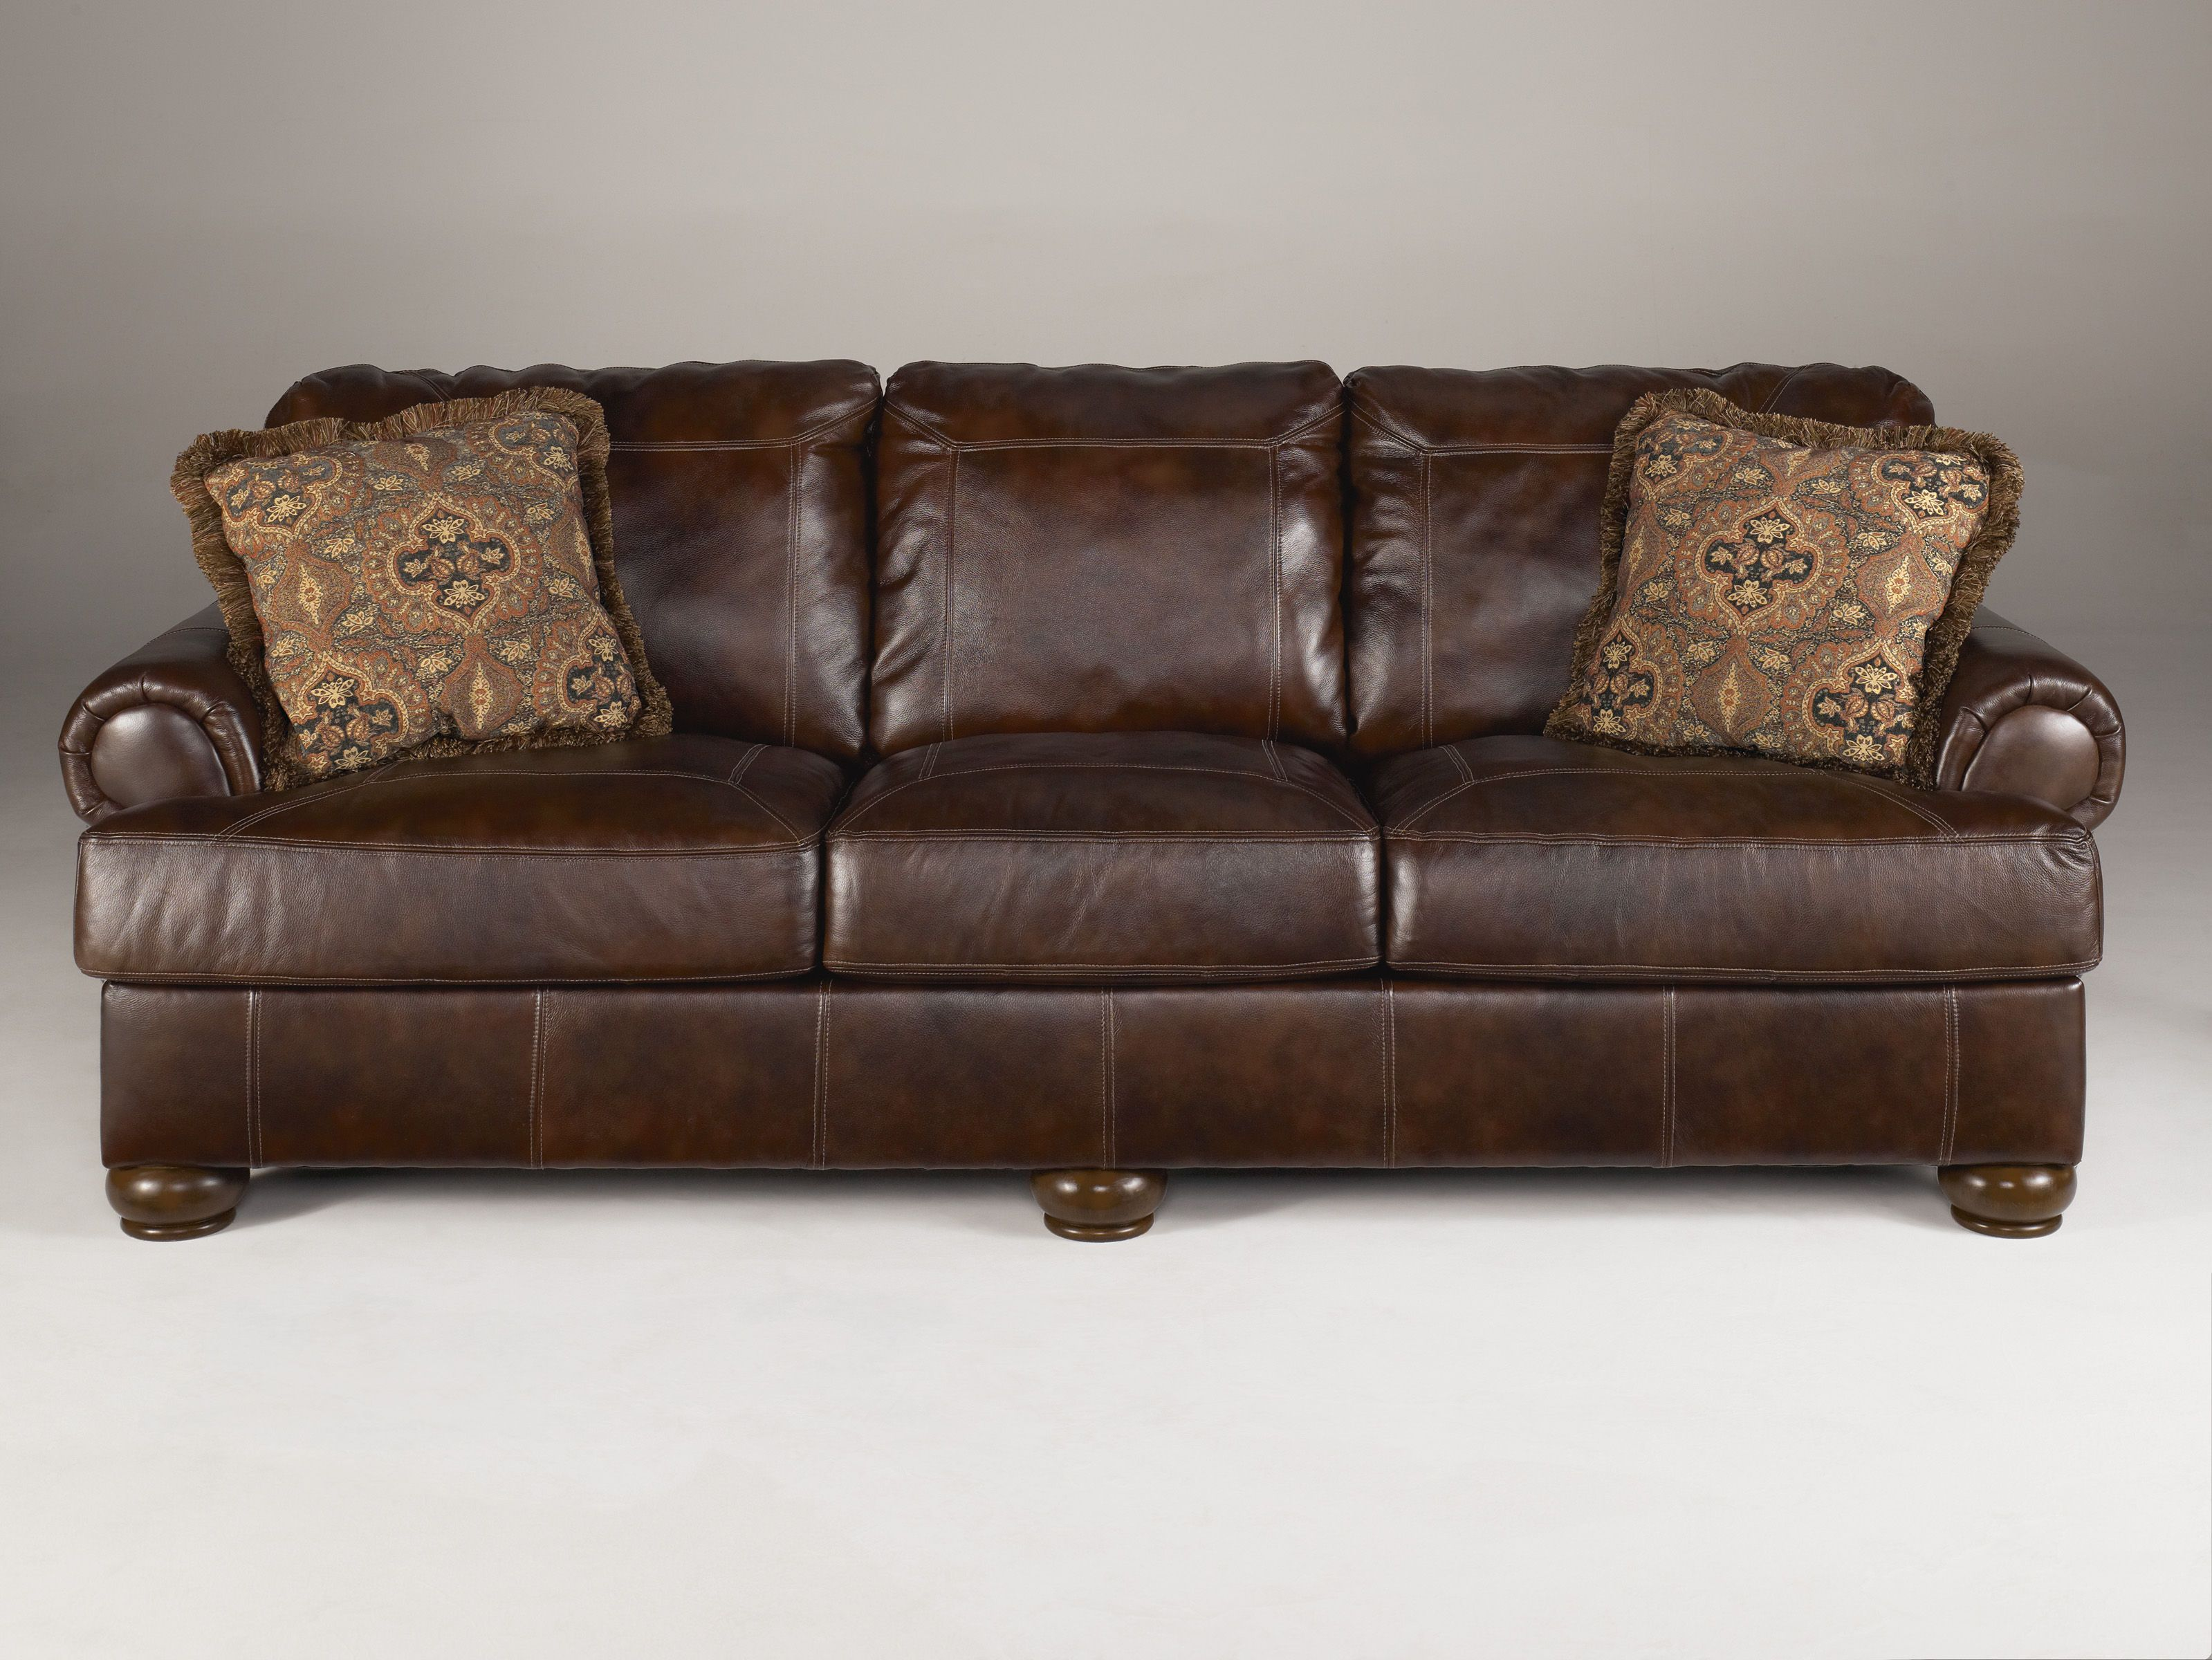 Cool Leather Couch Ashley Furniture Unique Leather Couch Ashley Furniture 87 For Your Sofa Table Ideas With Leat Ashley Leather Sofa Walnut Sofa Leather Sofa